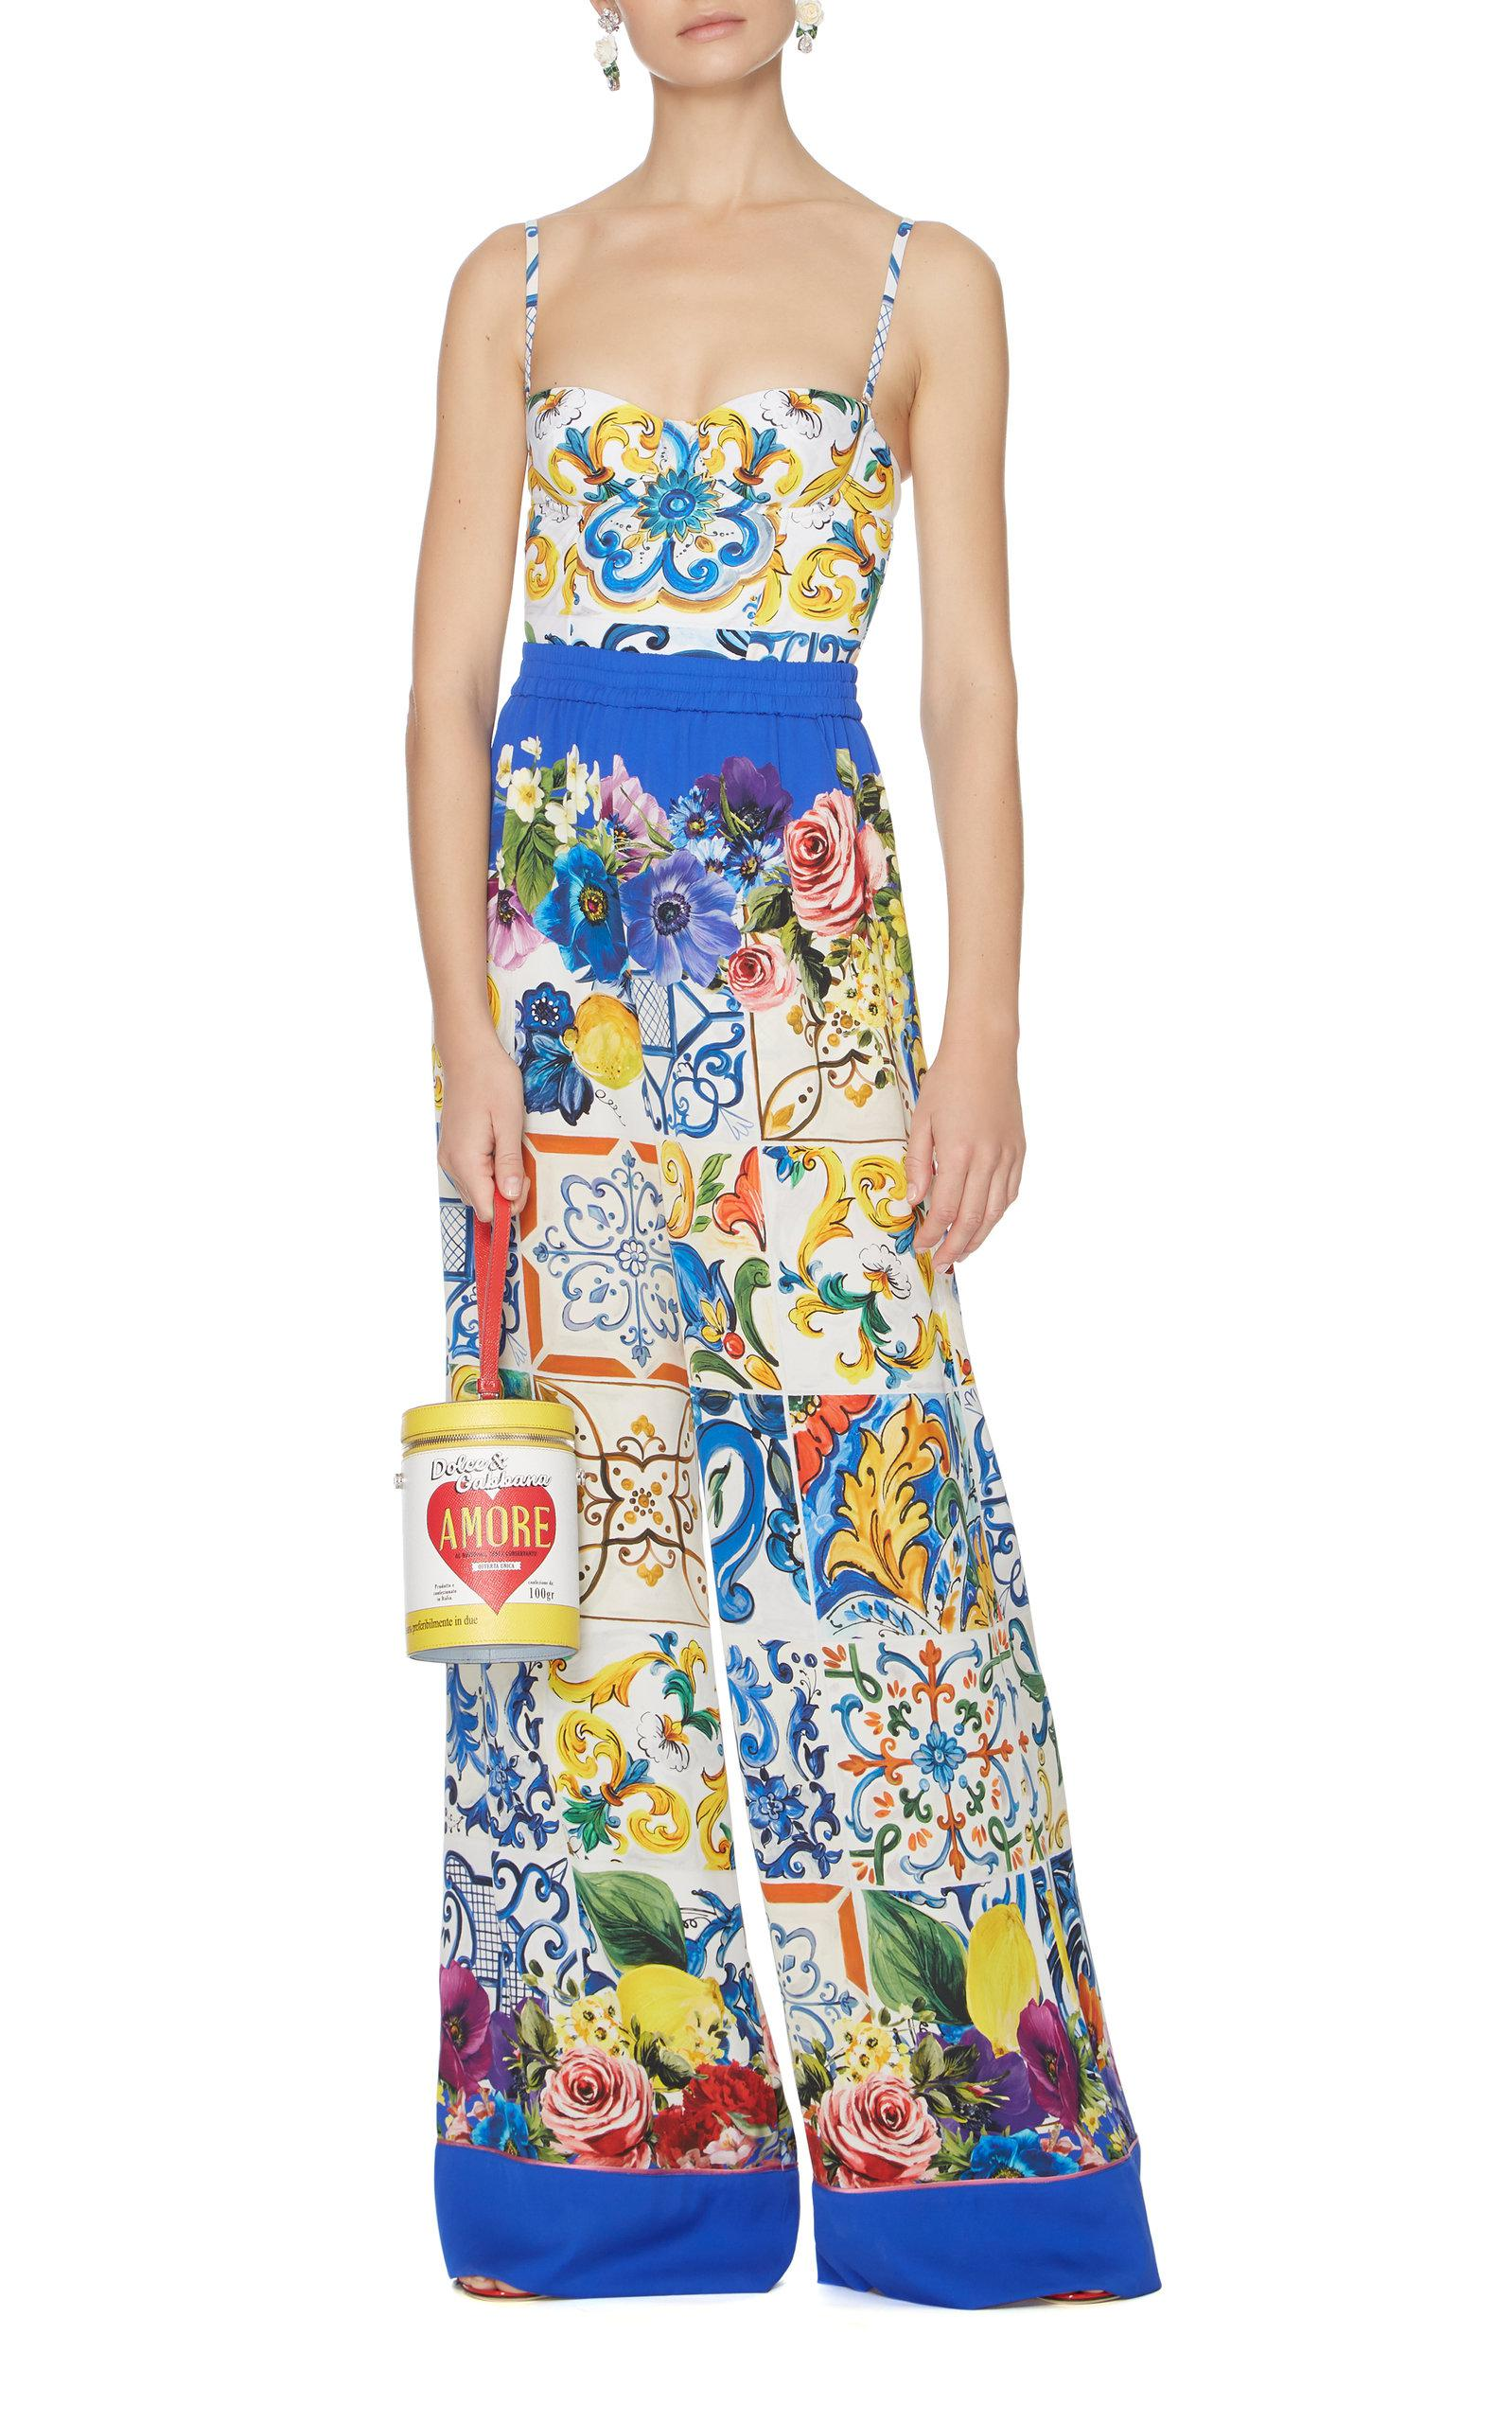 f375afdba8 Dolce   Gabbana Printed Leather Wristlet Bag in Yellow - Lyst